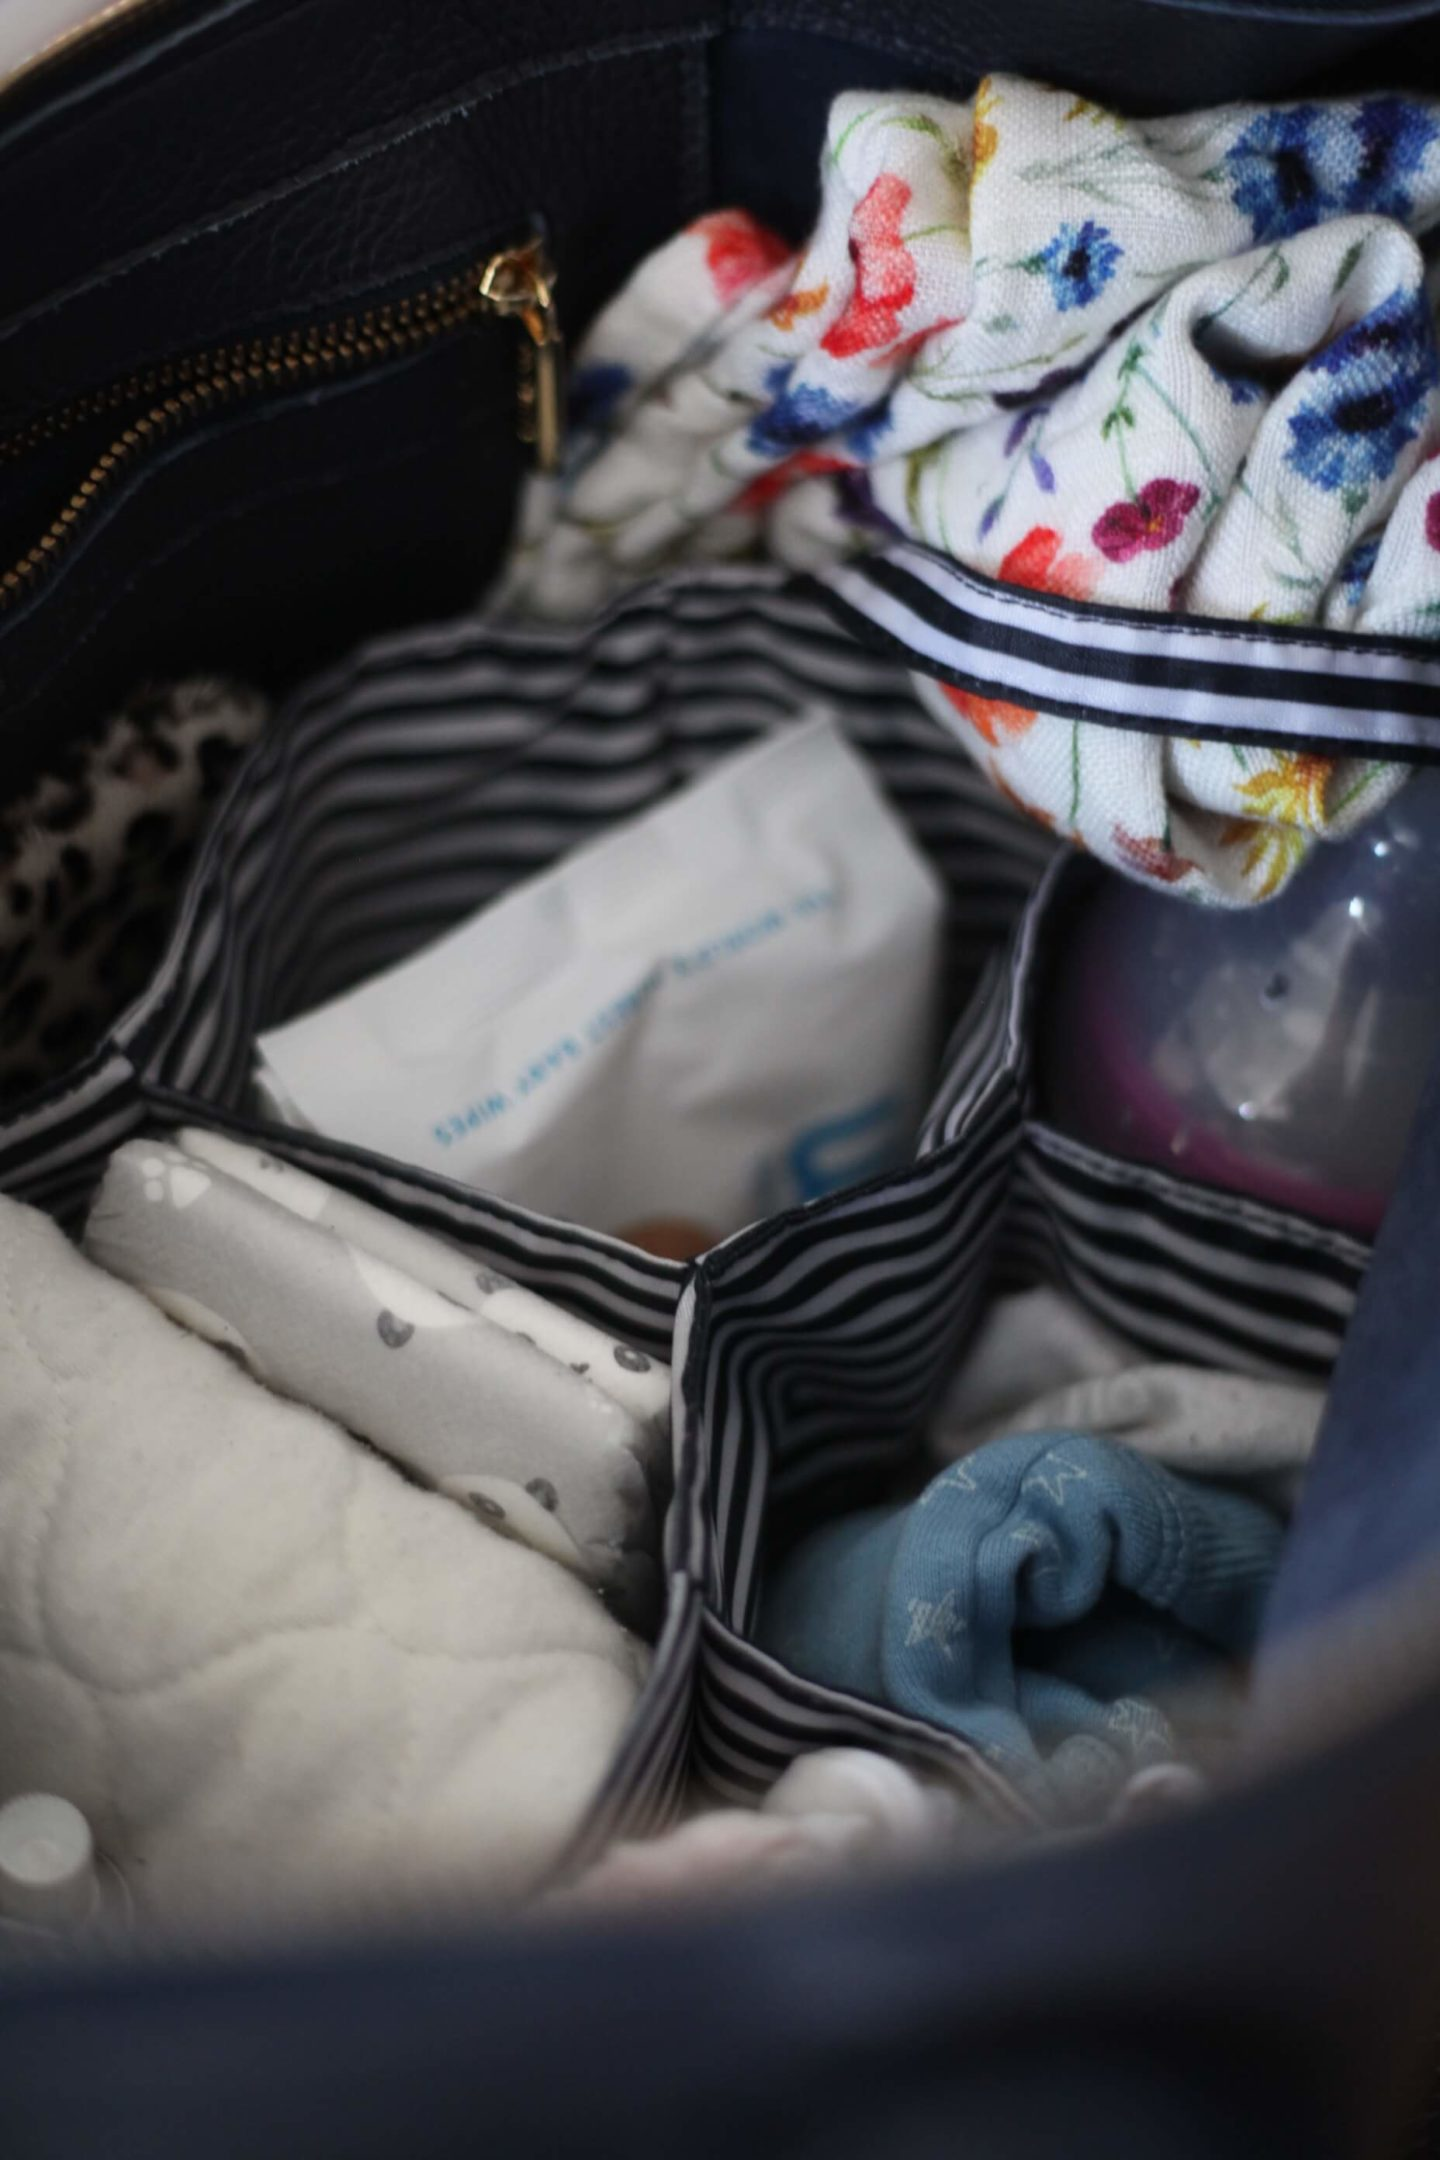 1f10a31866 Goldenchild Baby Diaper Bag Organizers featured by popular San Francisco  lifestyle blogger